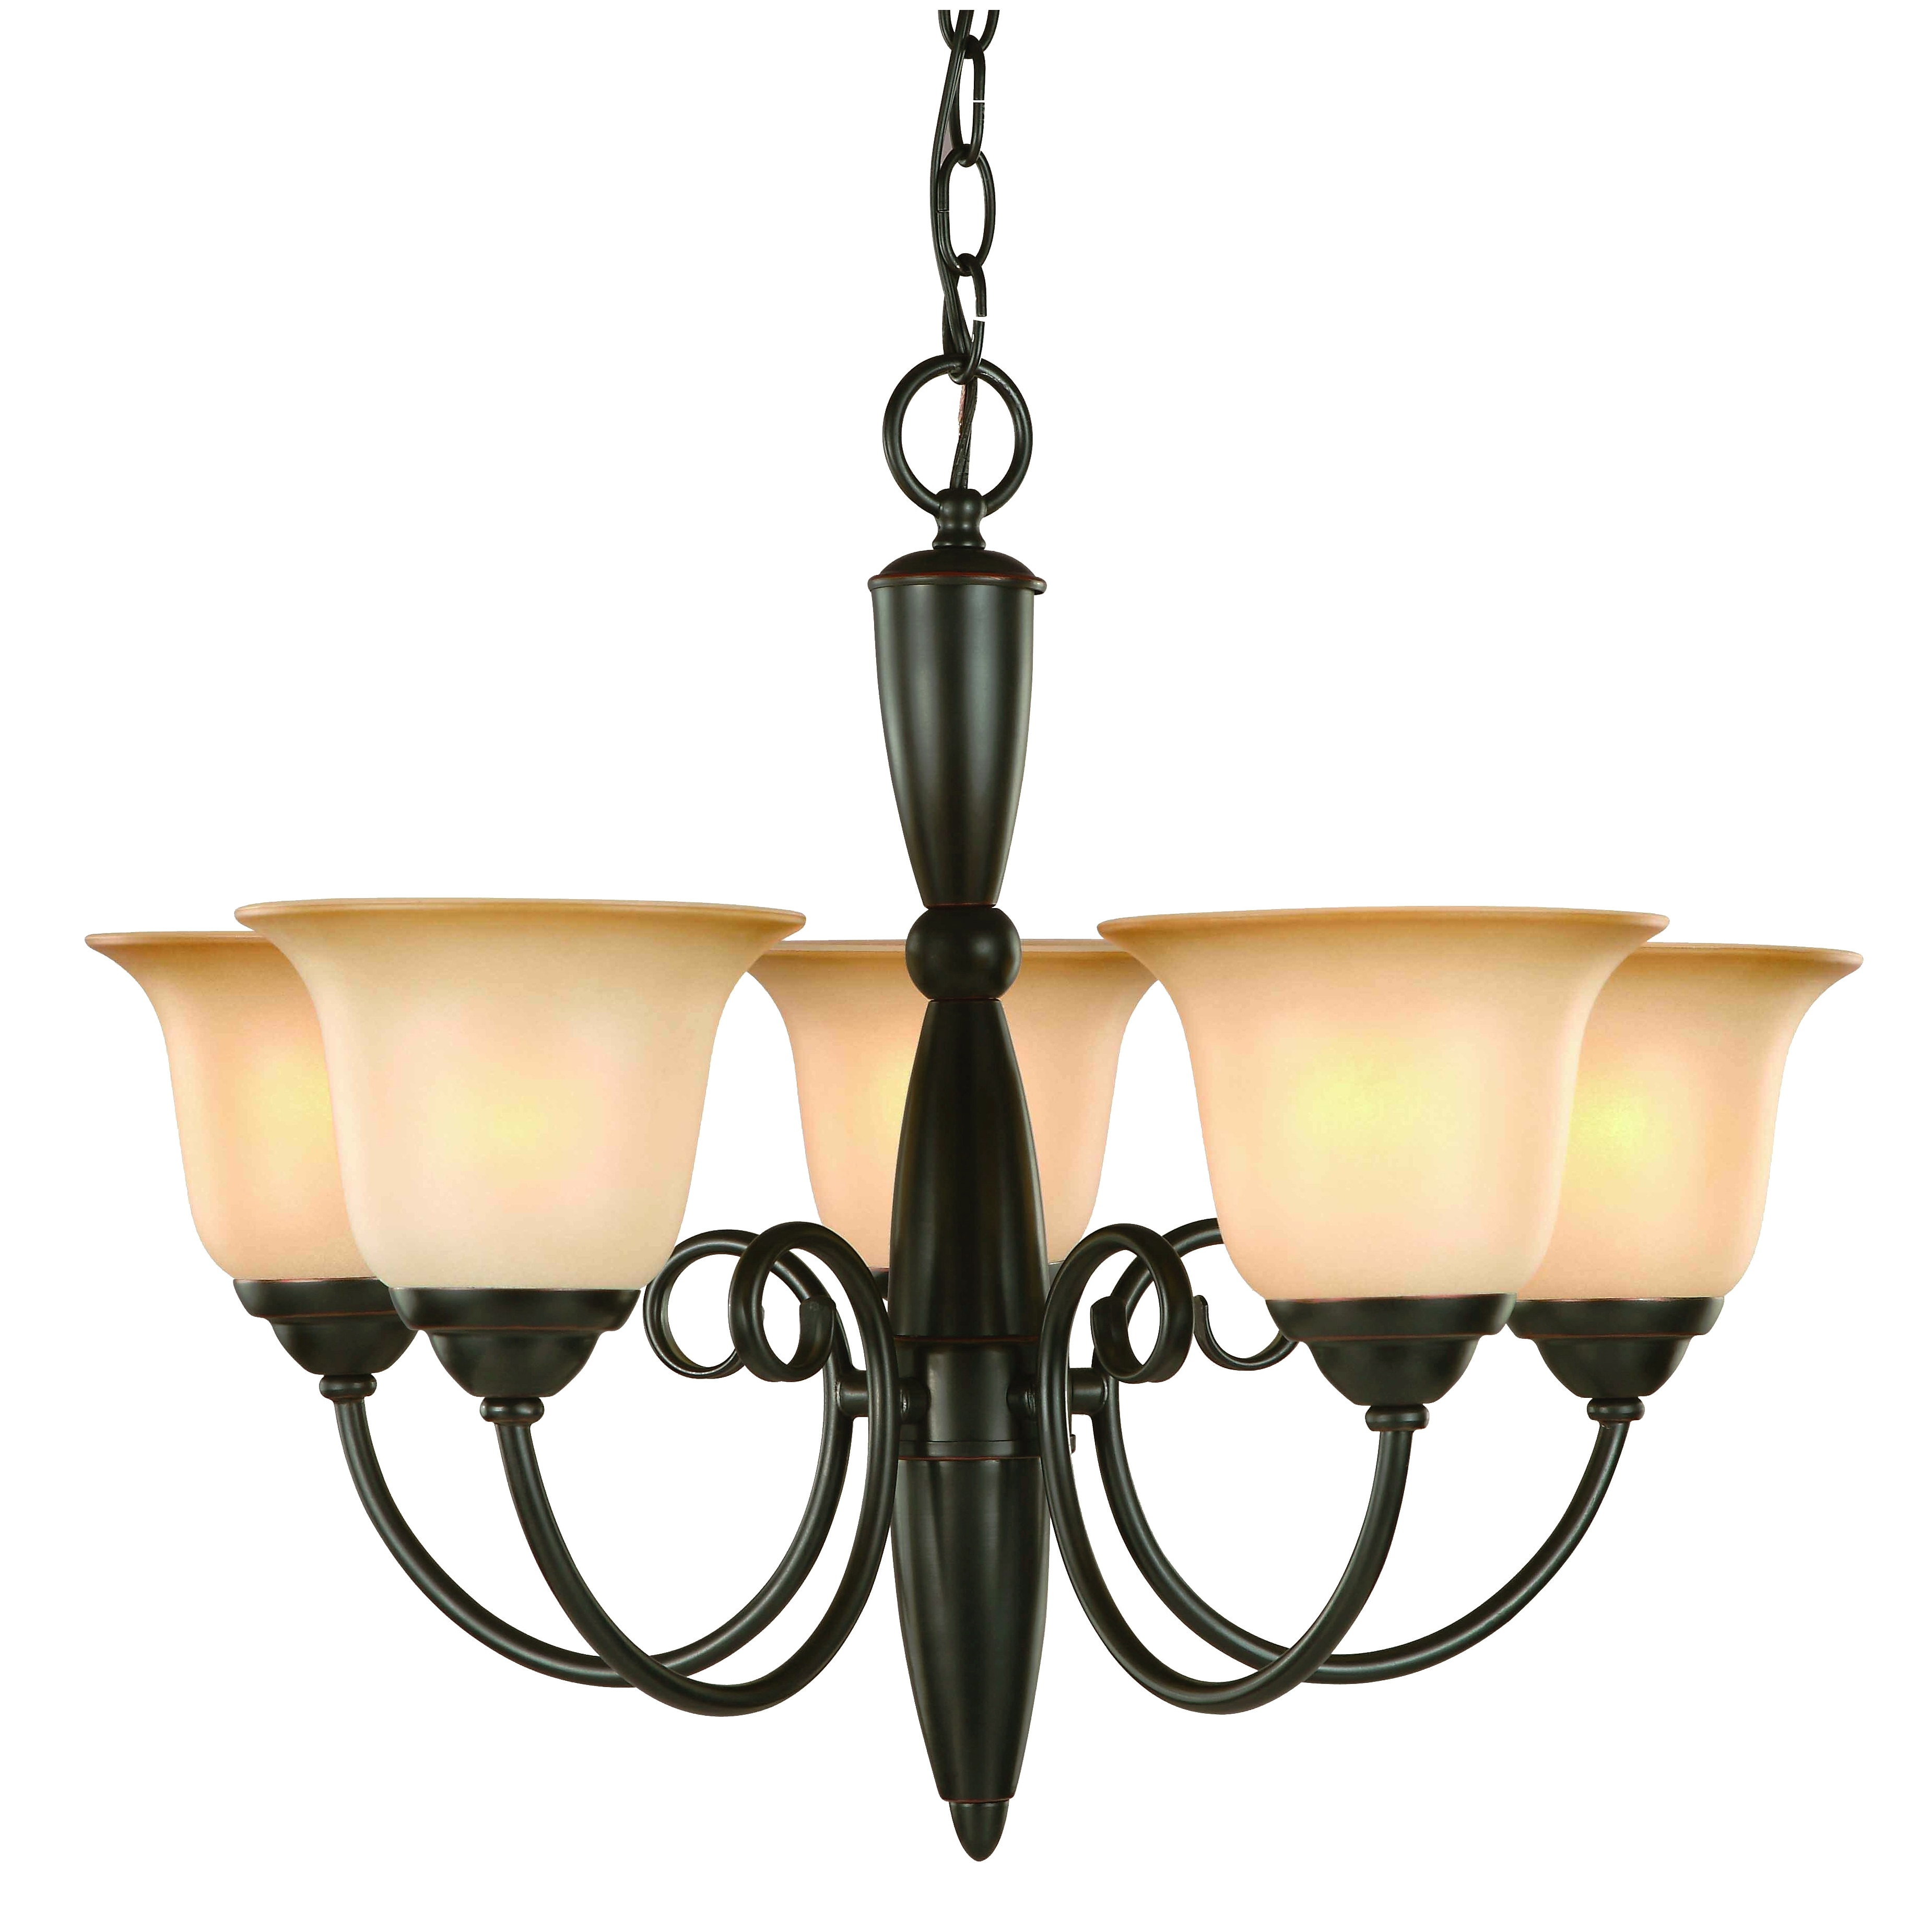 Chandelier Lights Pertaining To Most Popular Oil Rubbed Bronze Bathroom Vanity, Ceiling Lights & Chandelier (View 3 of 15)